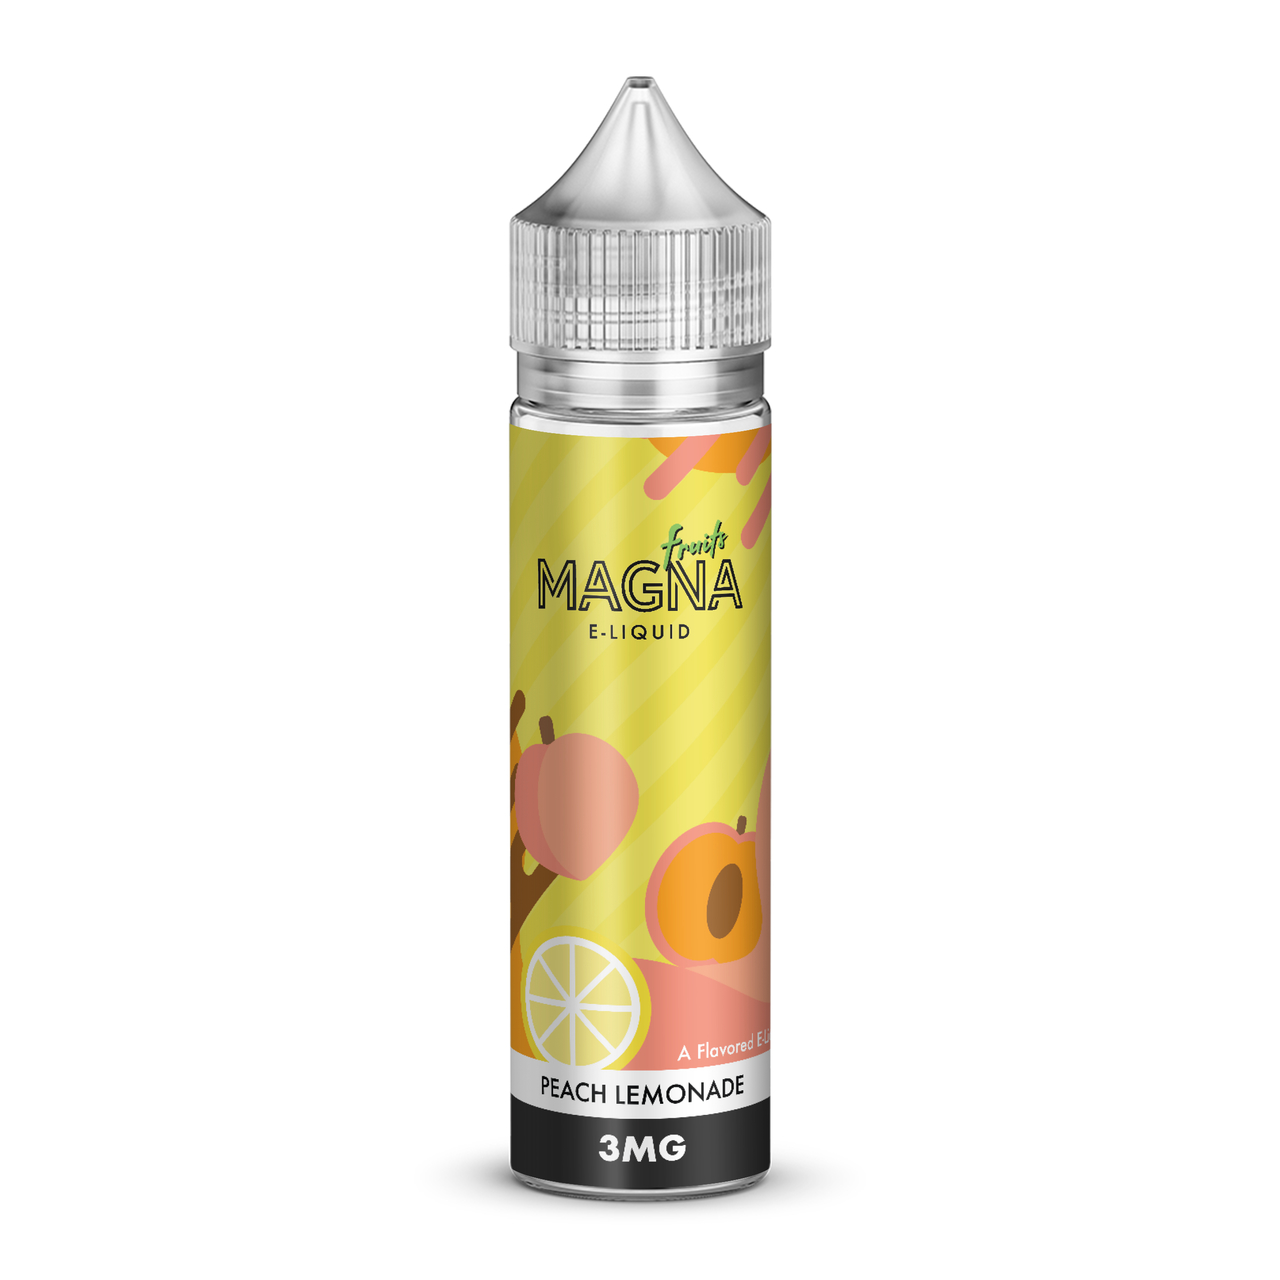 Peach Lemonade by Magna E-Liquid